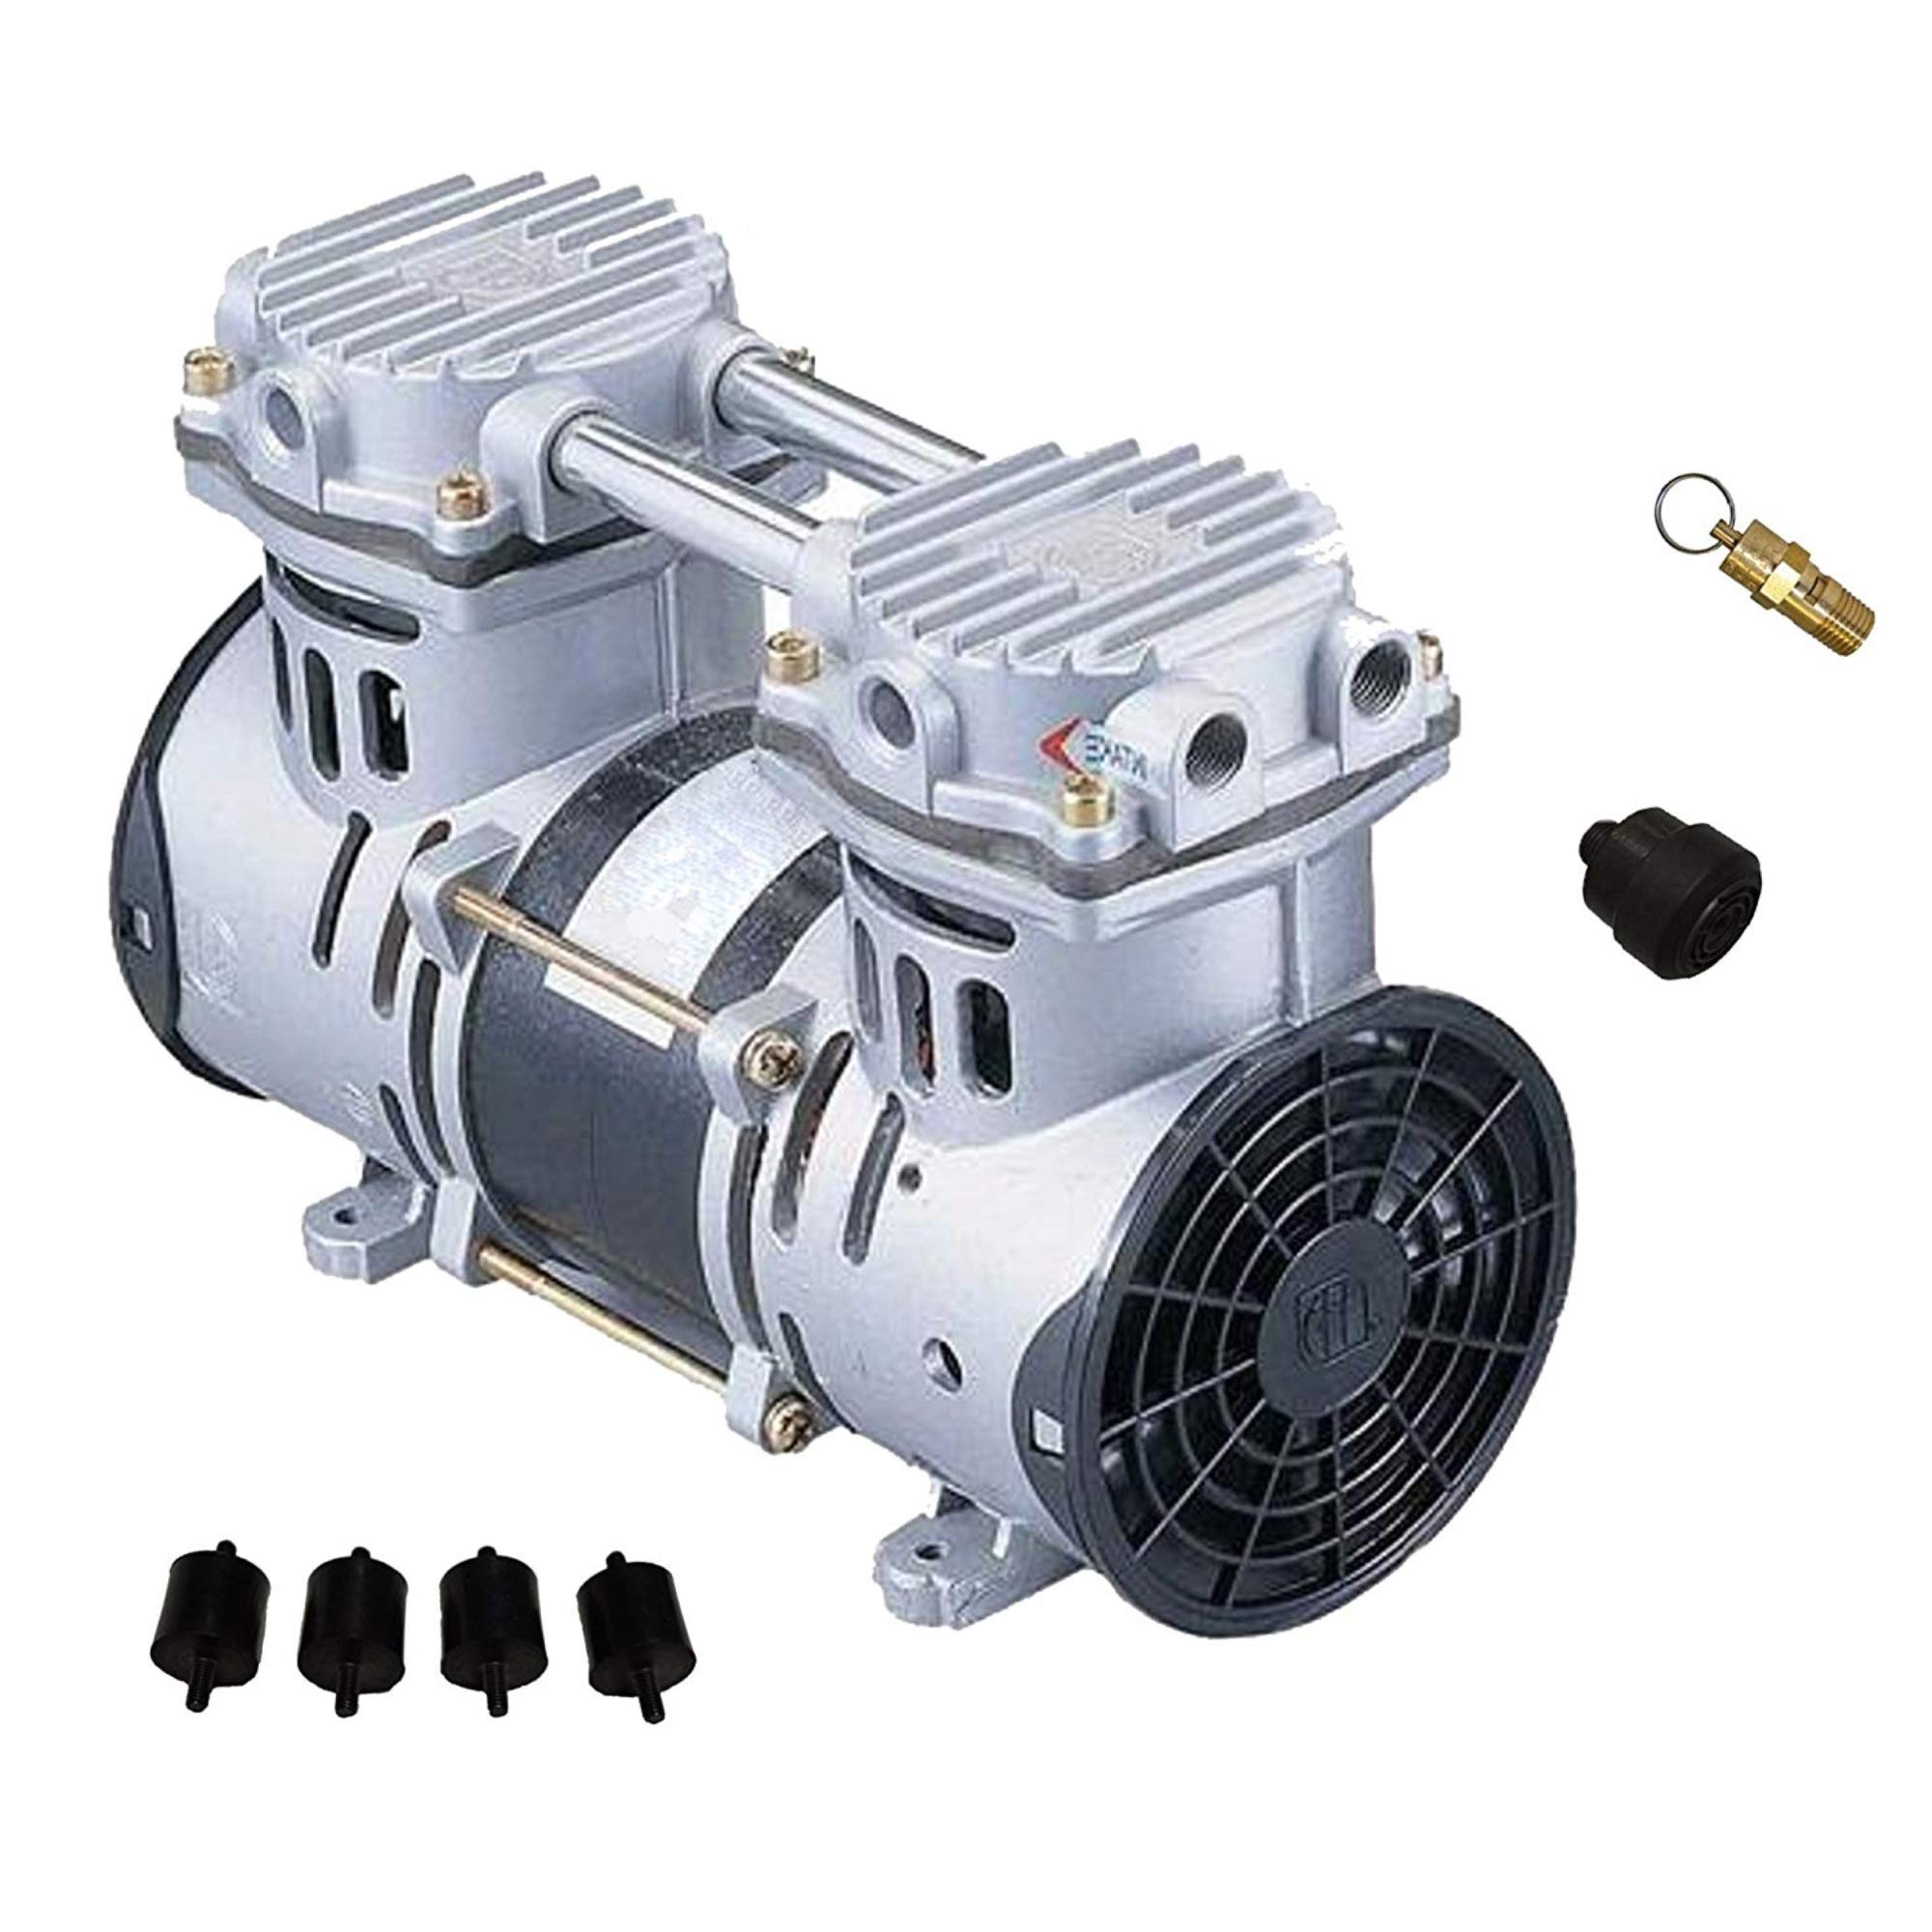 HALF OFF PONDS Patriot Pond Pro 3.9 Cubic Feet per Minute Deep Water Subsurface Air & Aeration Rocking Piston Air Compressor for Deep Water Subsurface Aeration of Ponds and Lakes by HALF OFF PONDS